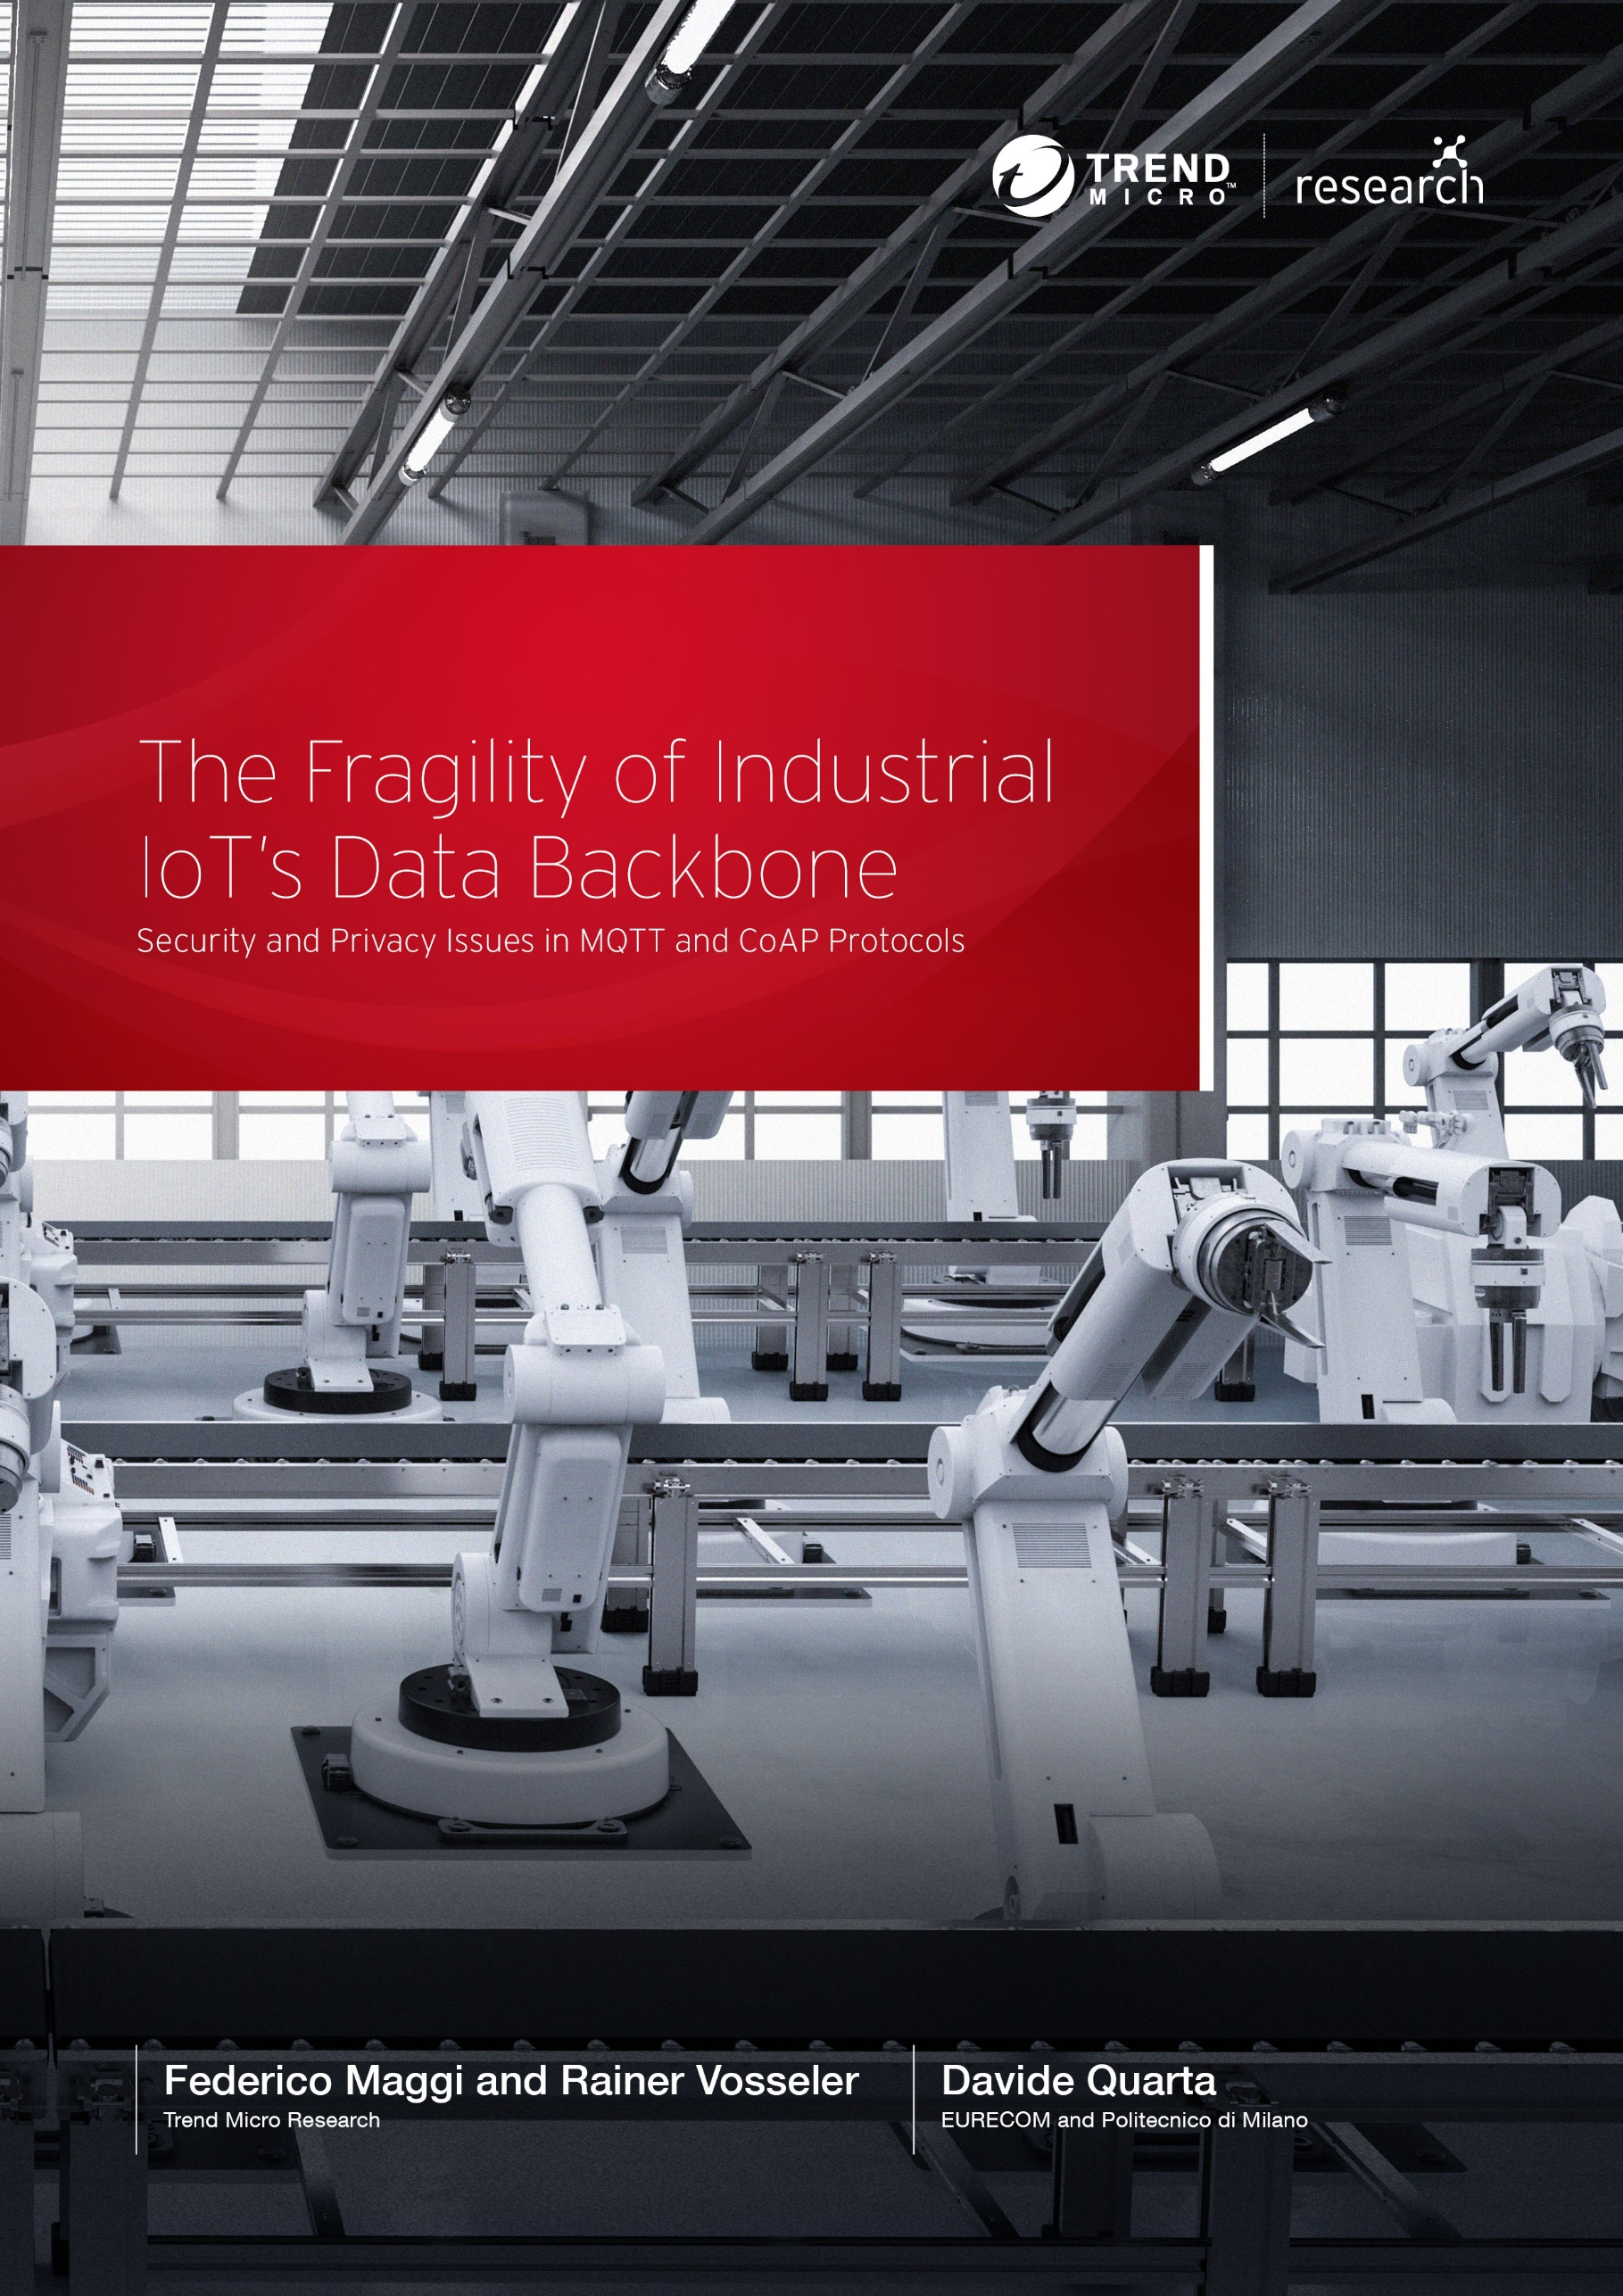 The Fragility of Industrial IoT's Data Backbone